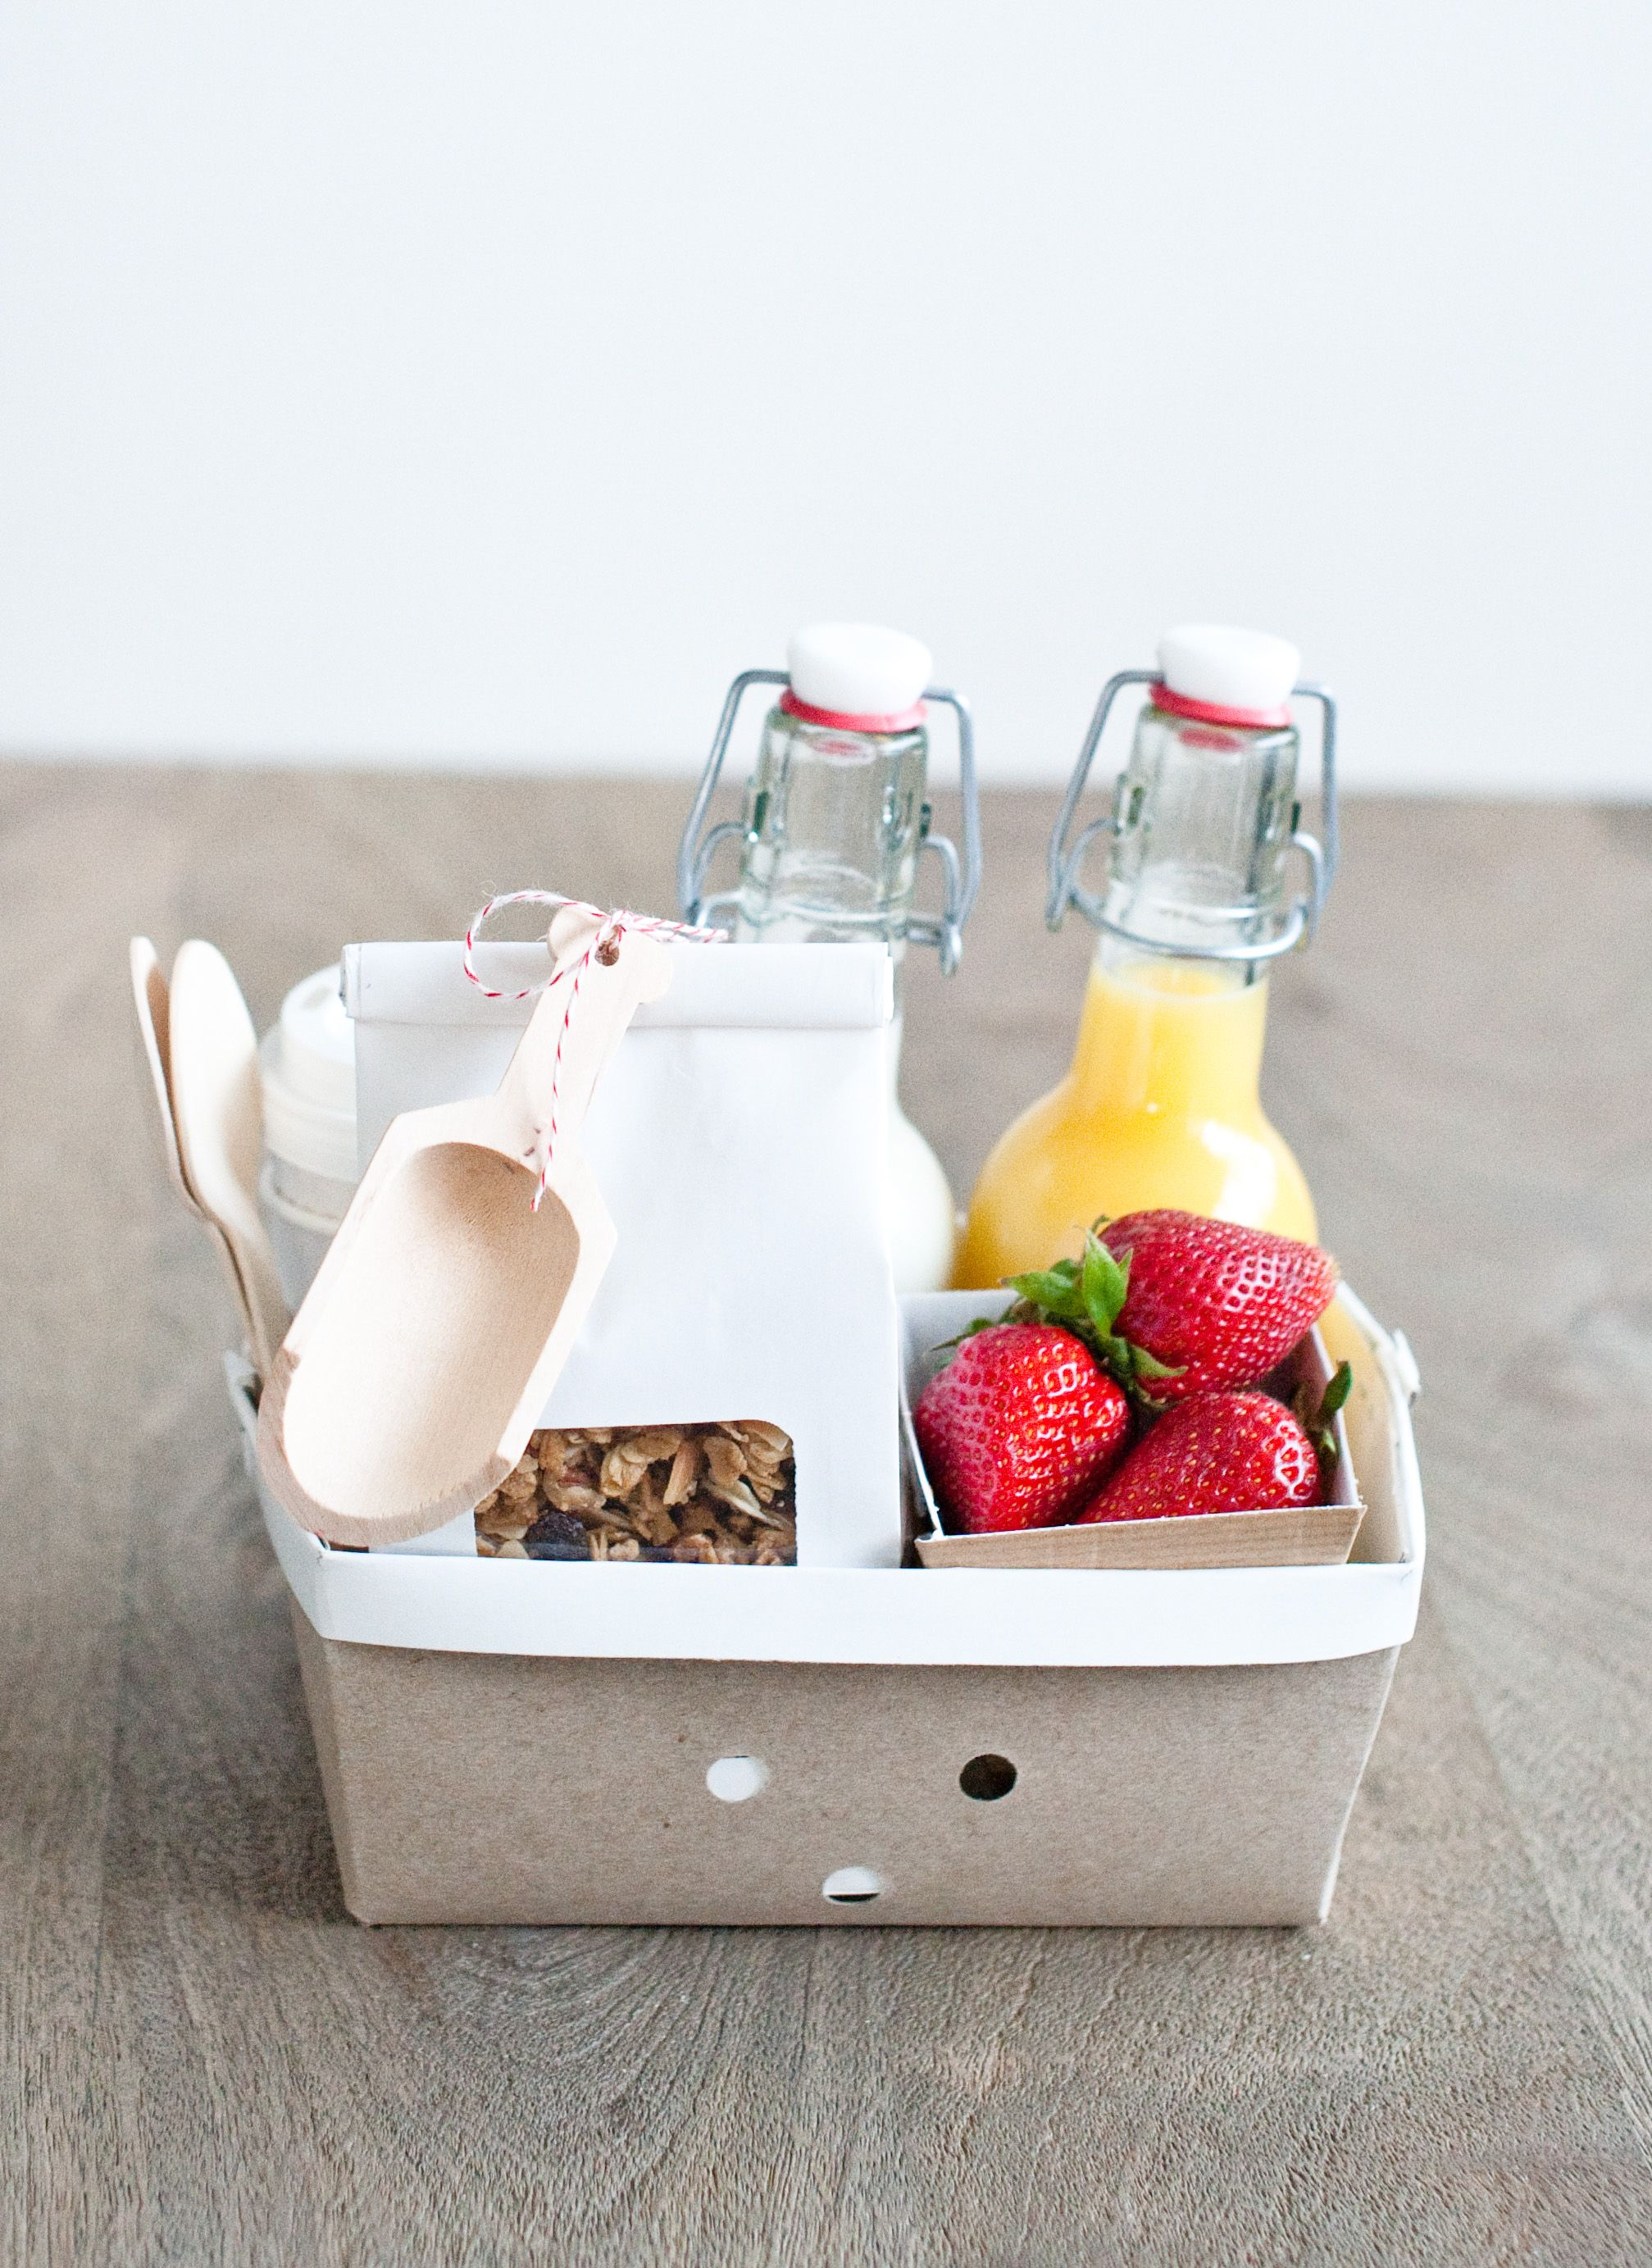 Picnic Basket Breakfast Ideas : Breakfast basket perfect for pampering mom in bed or